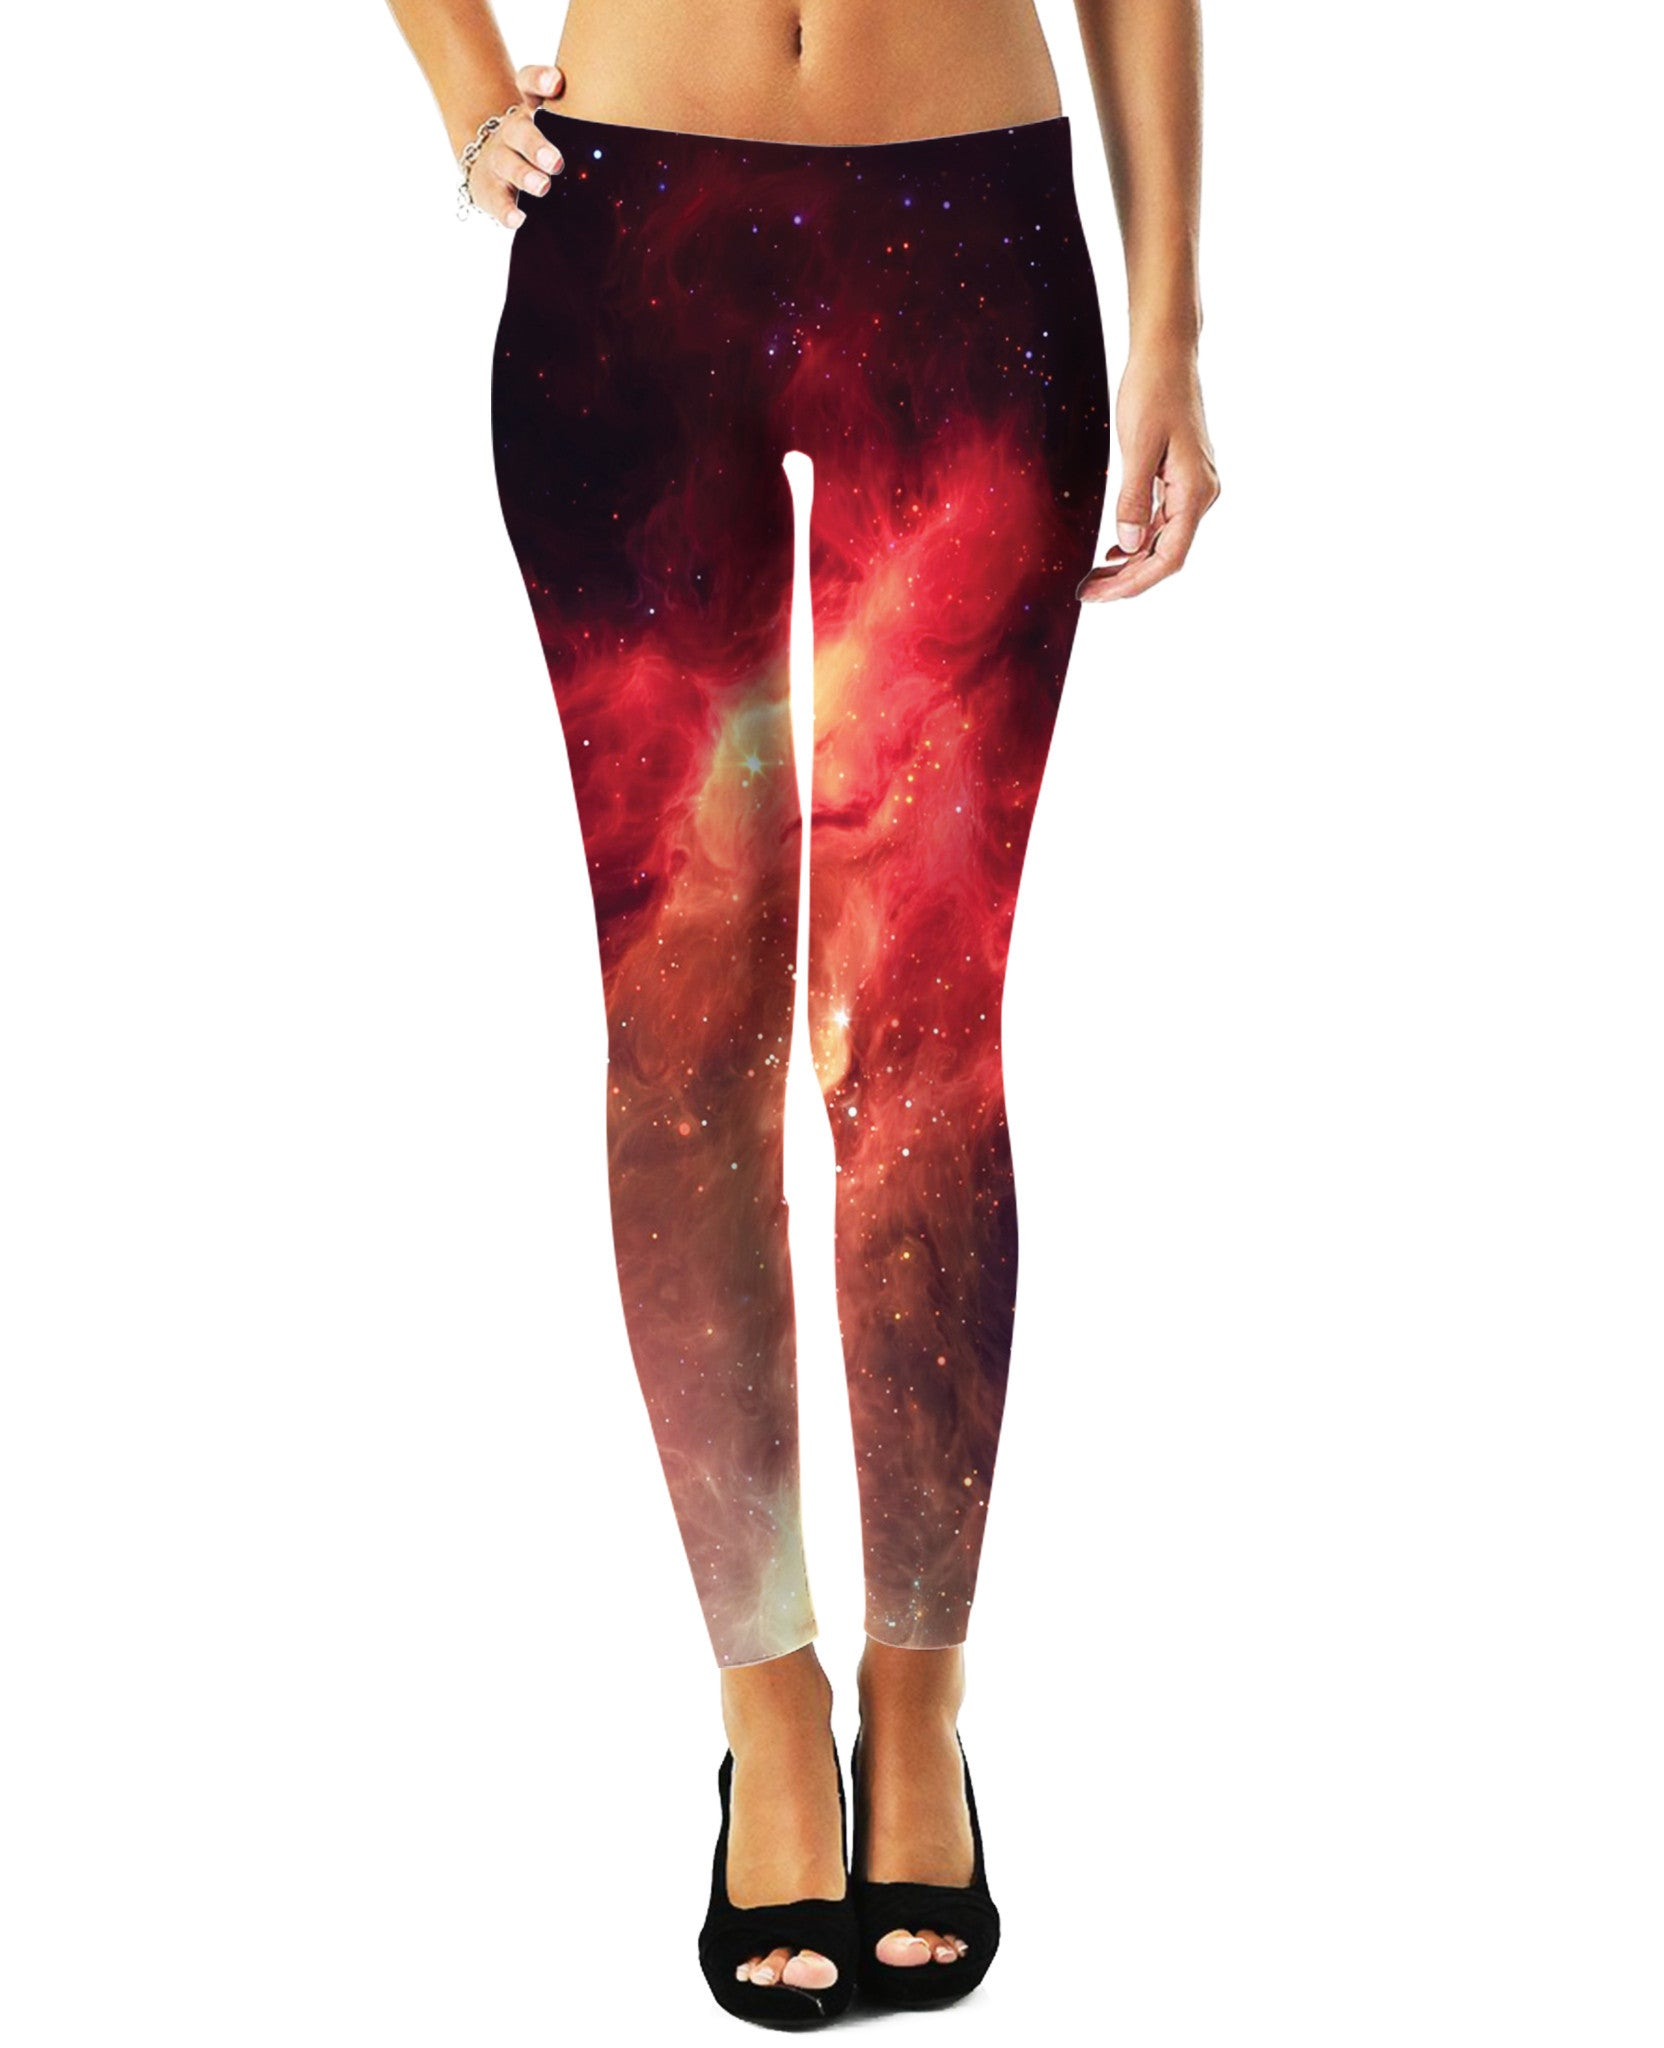 Crimson Nebula Leggings